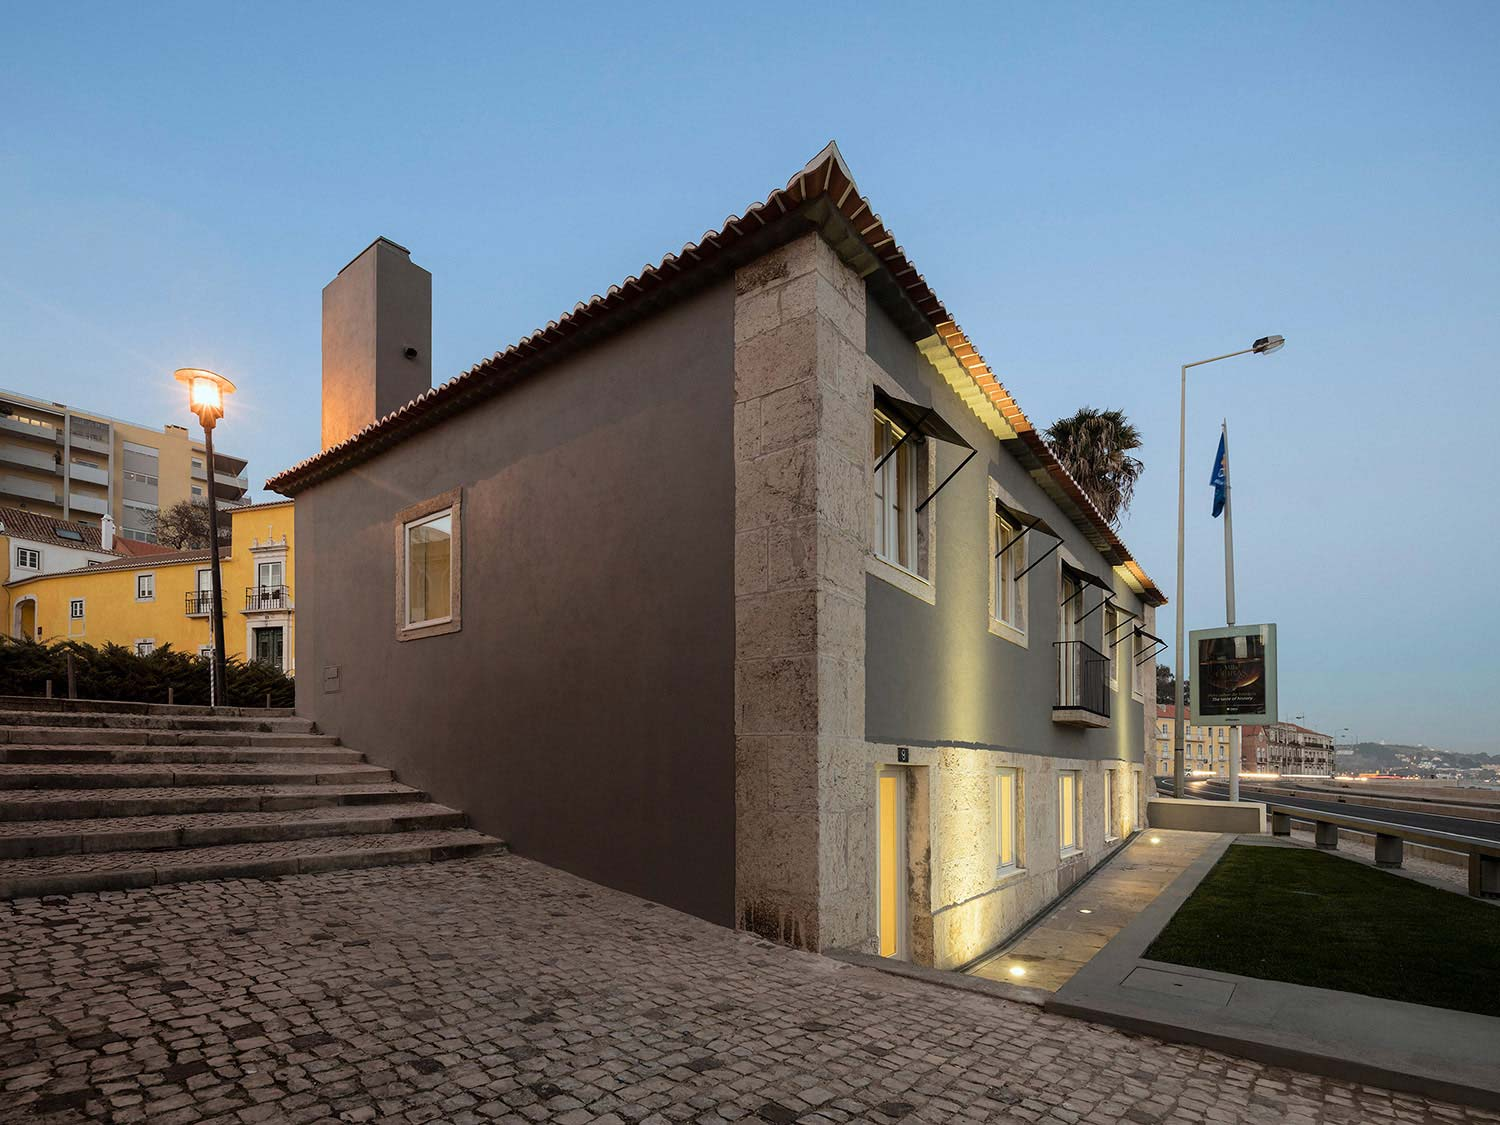 SOTHEBY'S INTERNATIONAL REALTY – OEIRAS/RESTELO